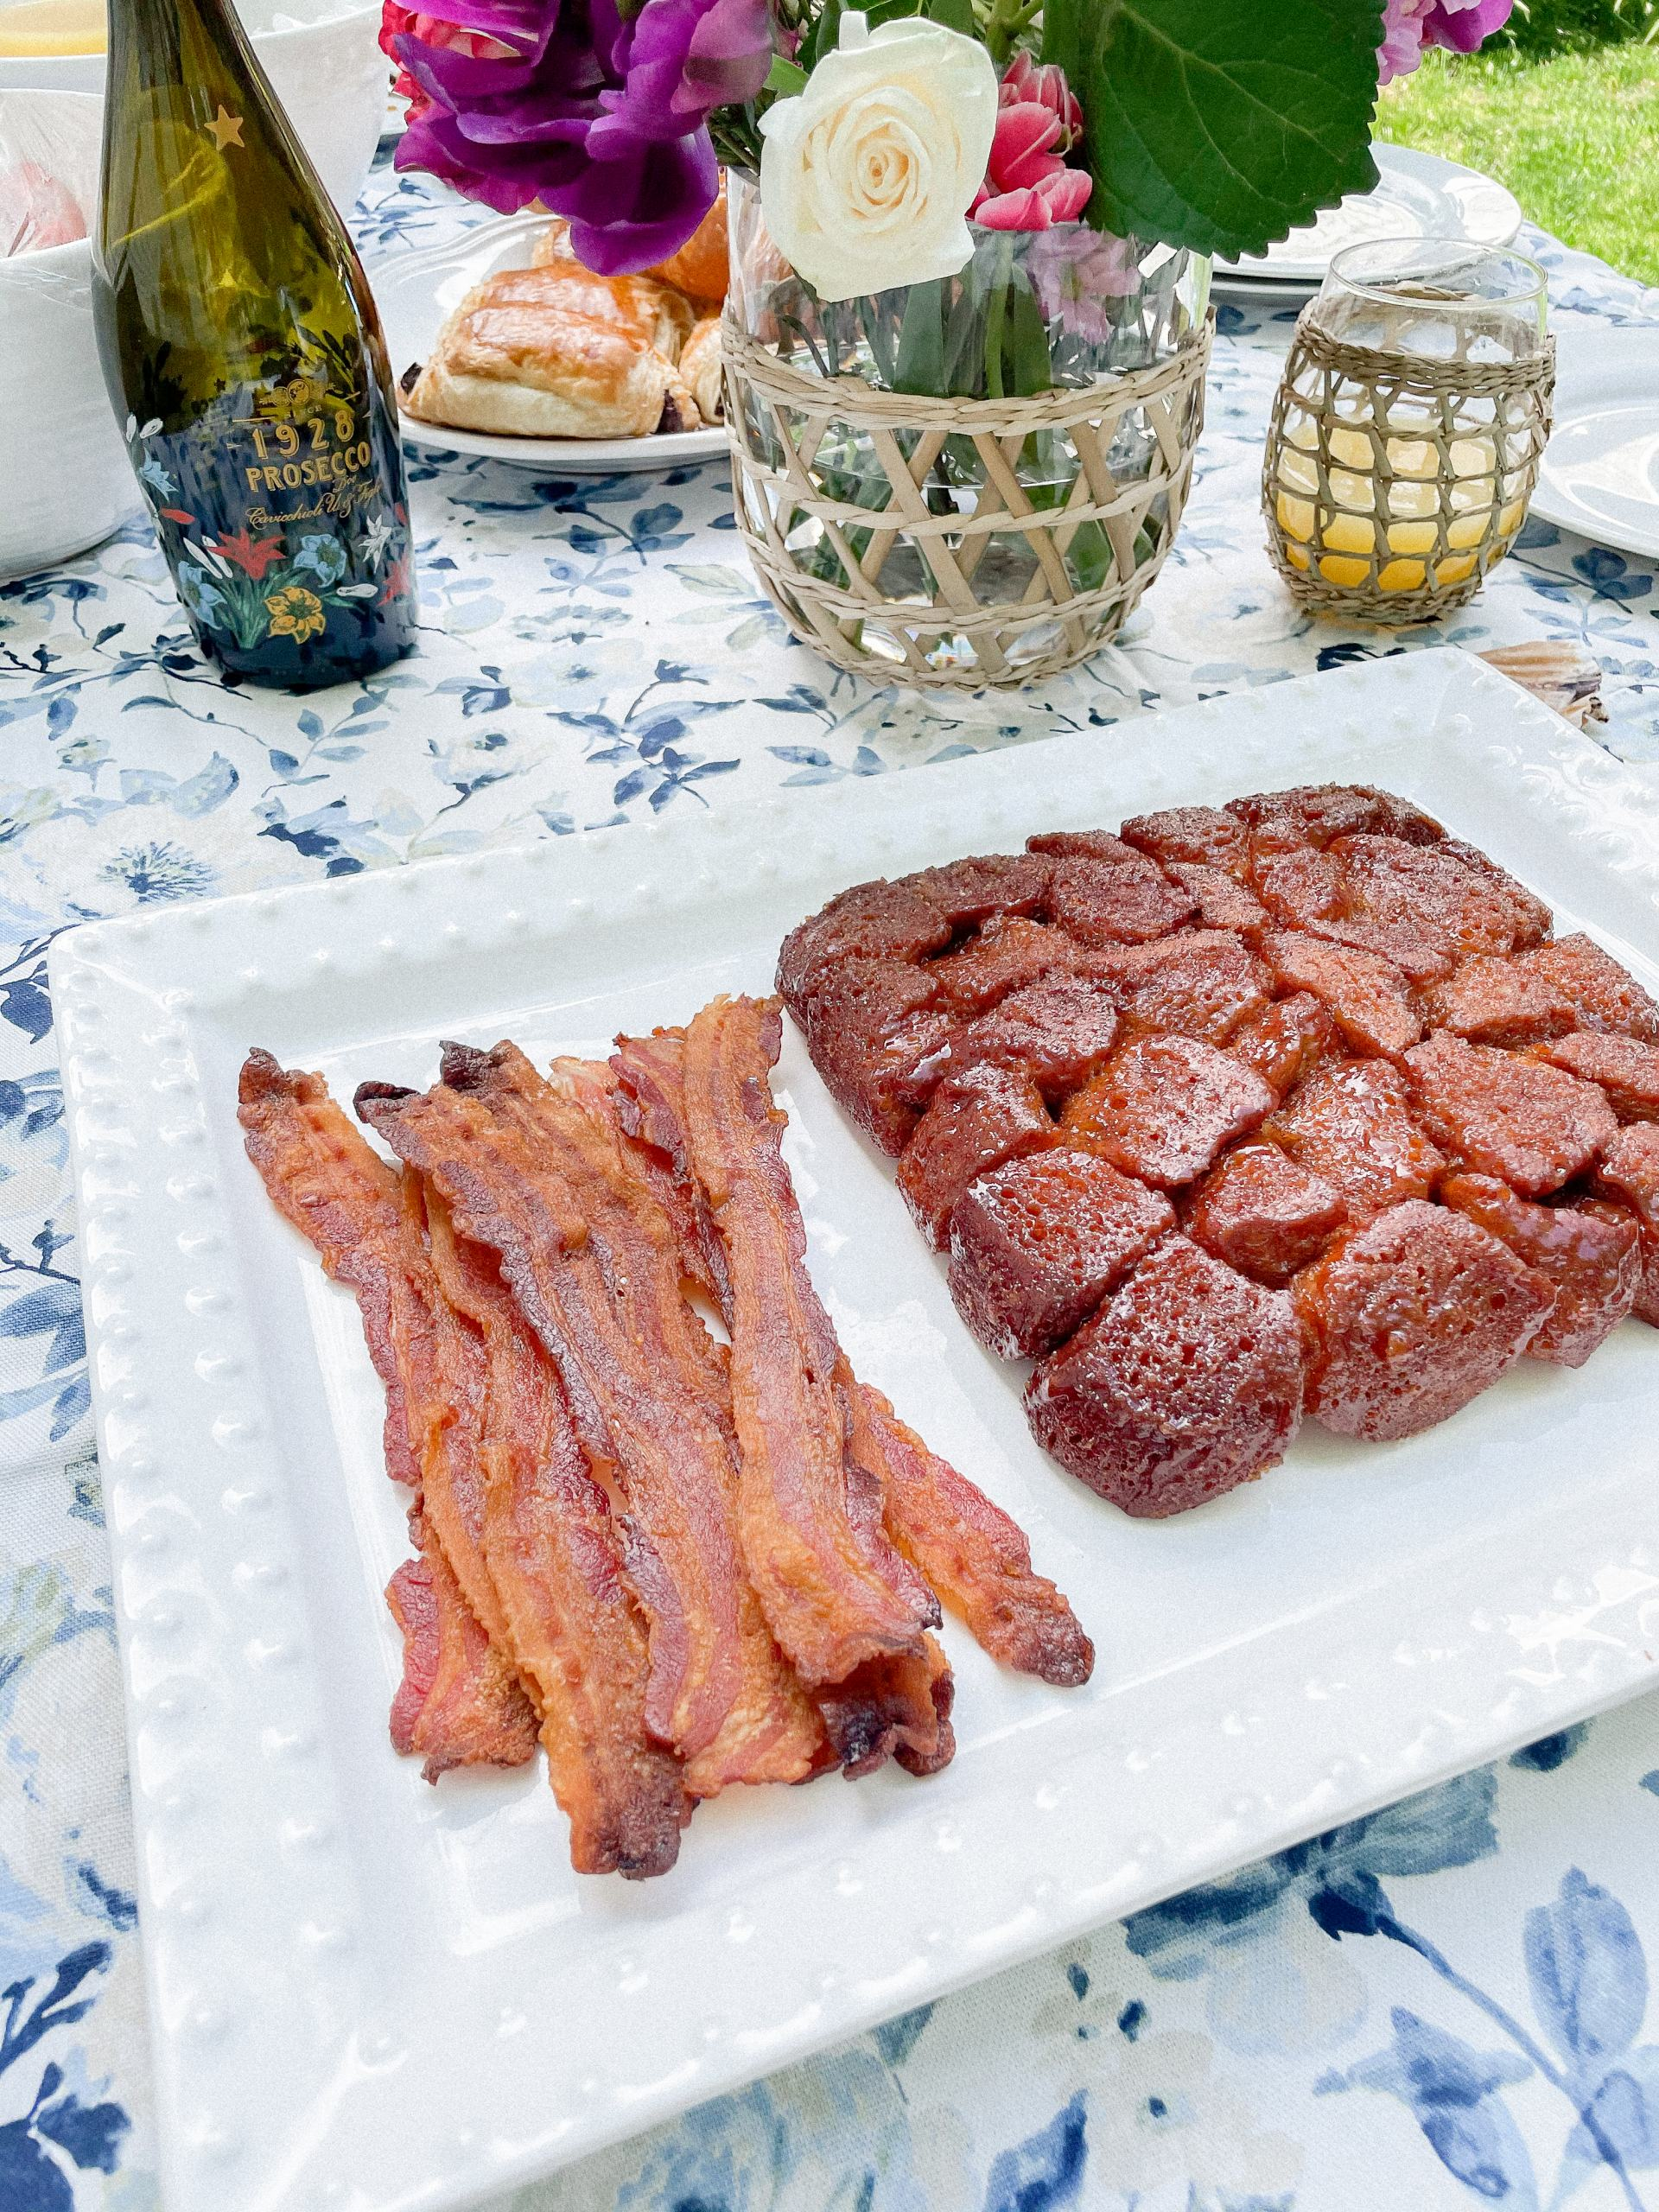 bacon and pull apart bread